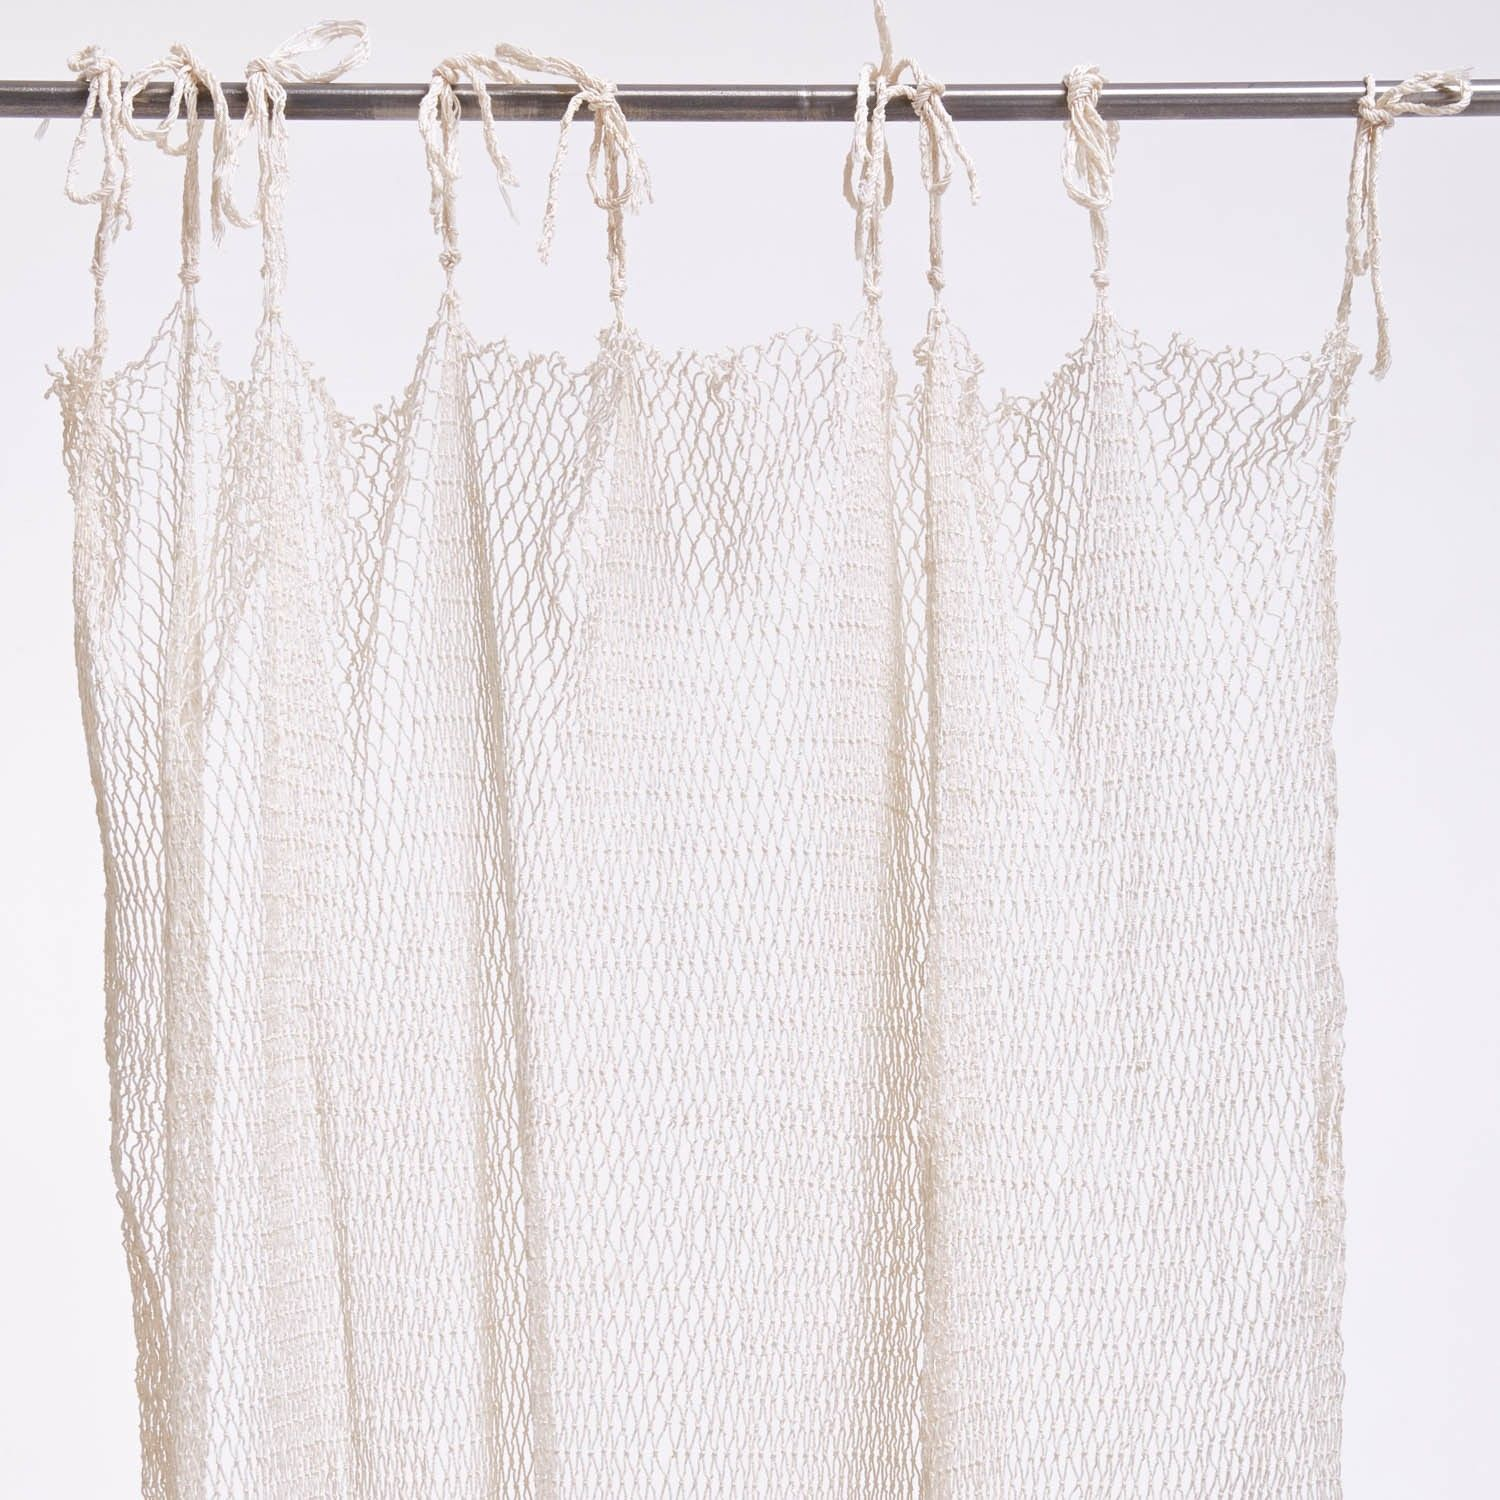 Exclusively At ABC, One Of A Kind Designs Are Hand Knotted By Fishermenu0027s  Wives. Hang CurtainsShower ...